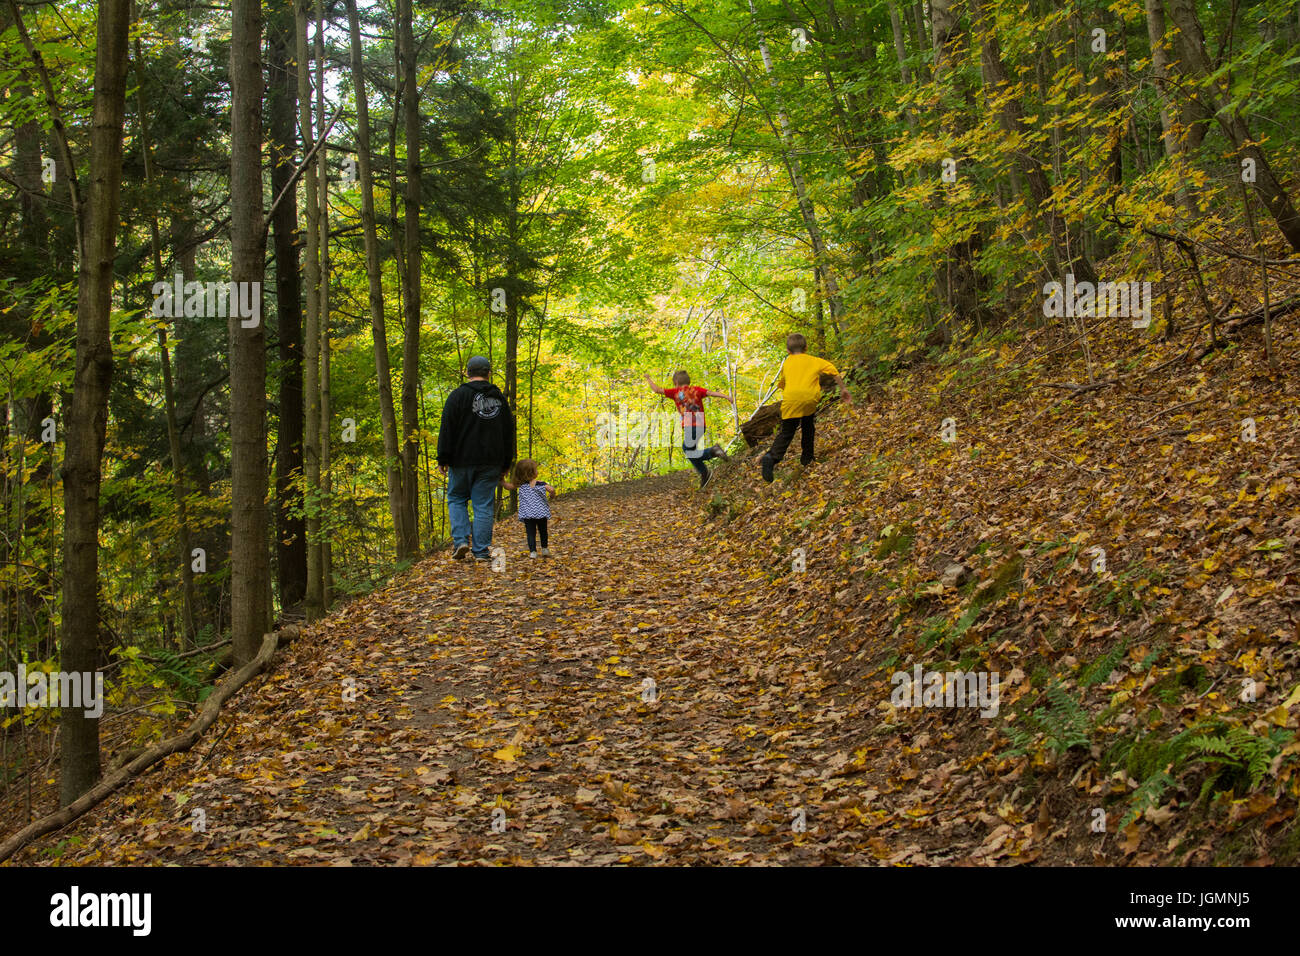 A man and three children playing and walking on a leaf covered path in the woods. - Stock Image